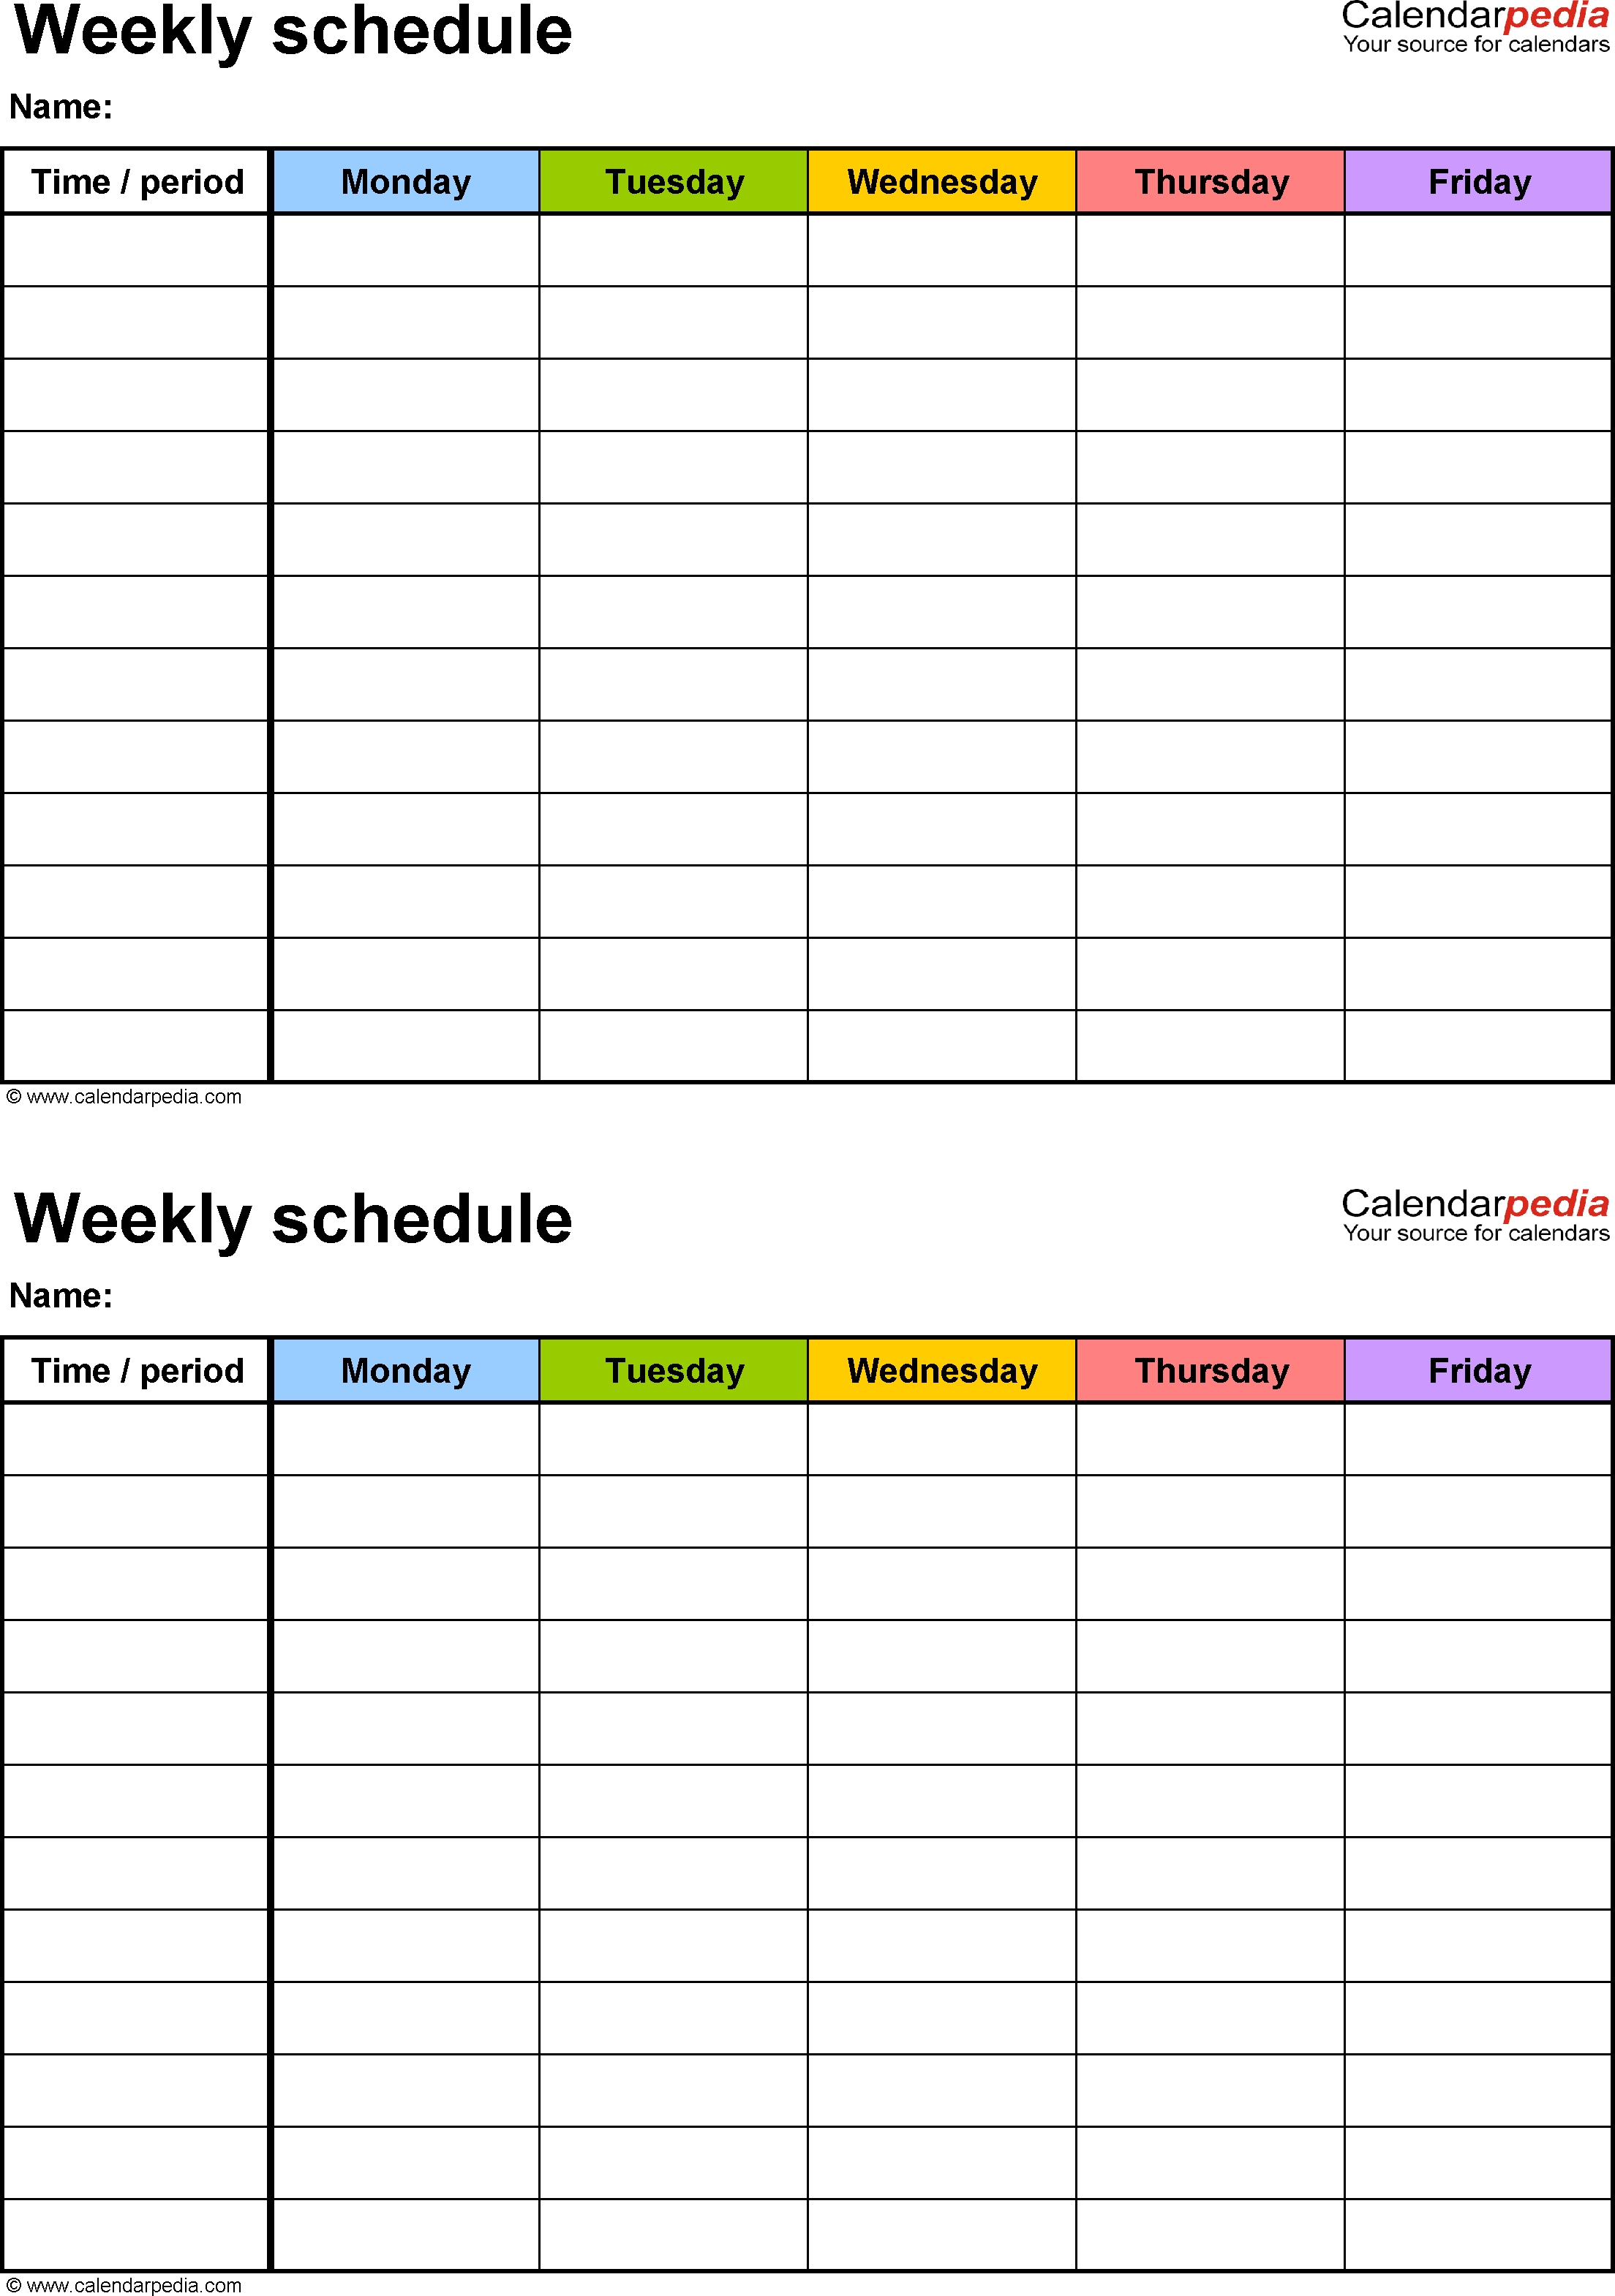 Free Weekly Schedule Templates For Word - 18 Templates-Summer Camp Template Calendar For Word